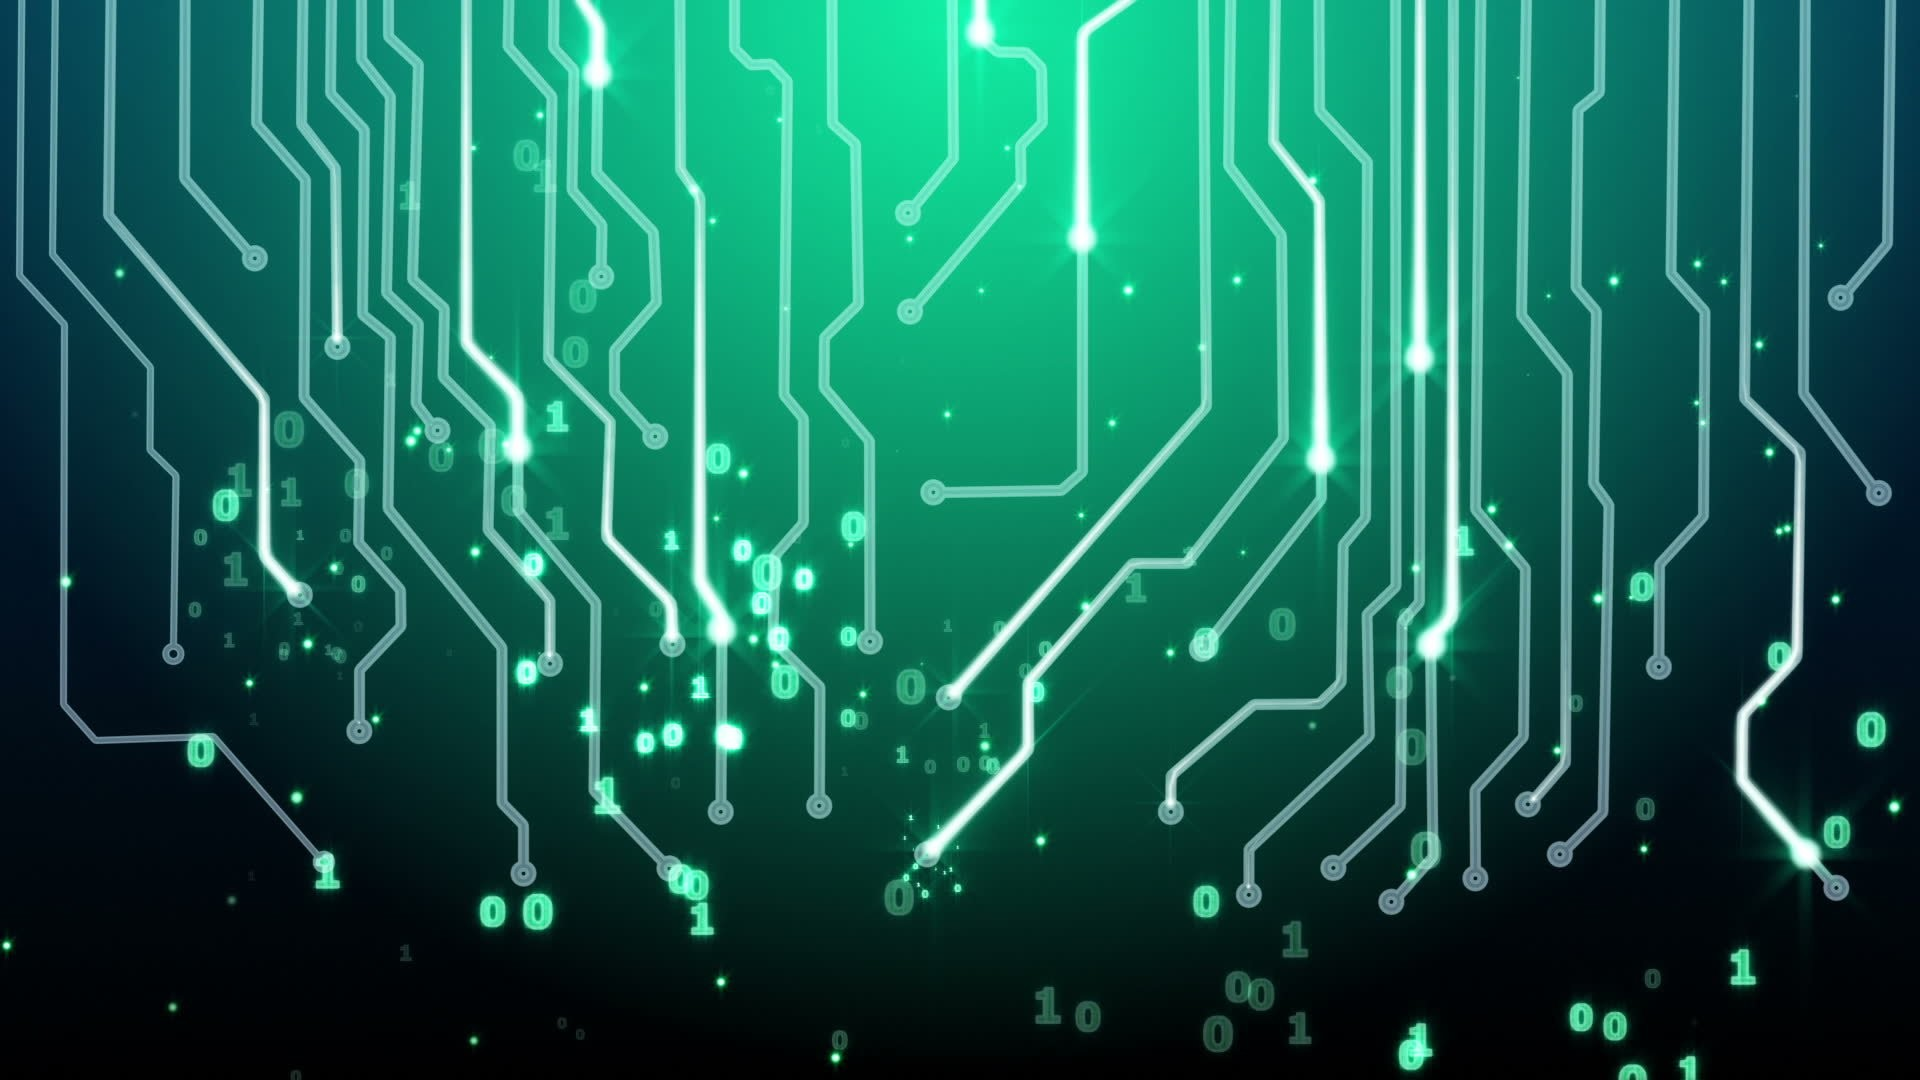 Computer Circuits Background Texture As A Design